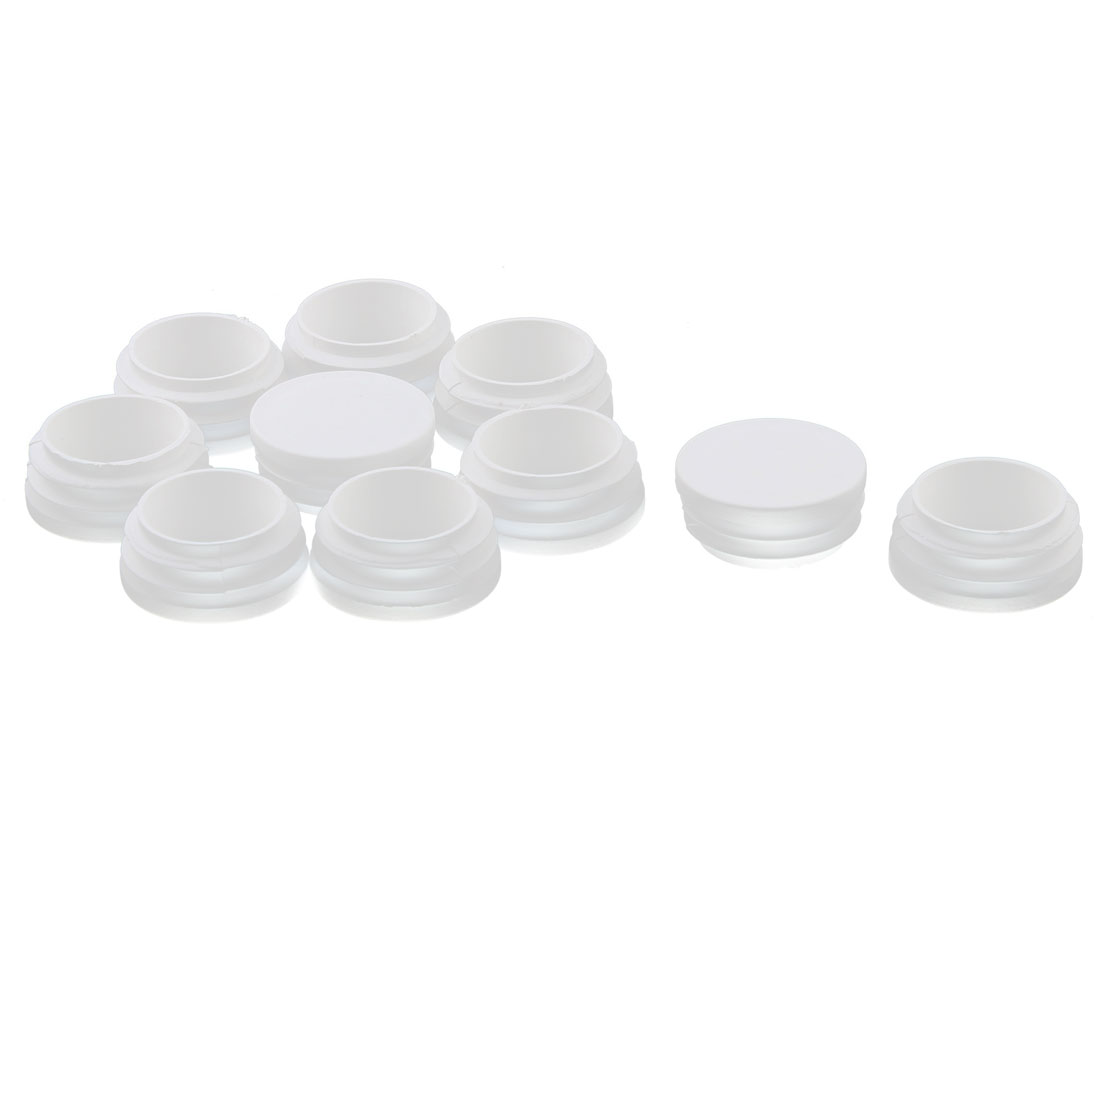 Plastic Feet Legs Round Shaped Tube Pipe Inserts End Caps Covers White 10 PCS